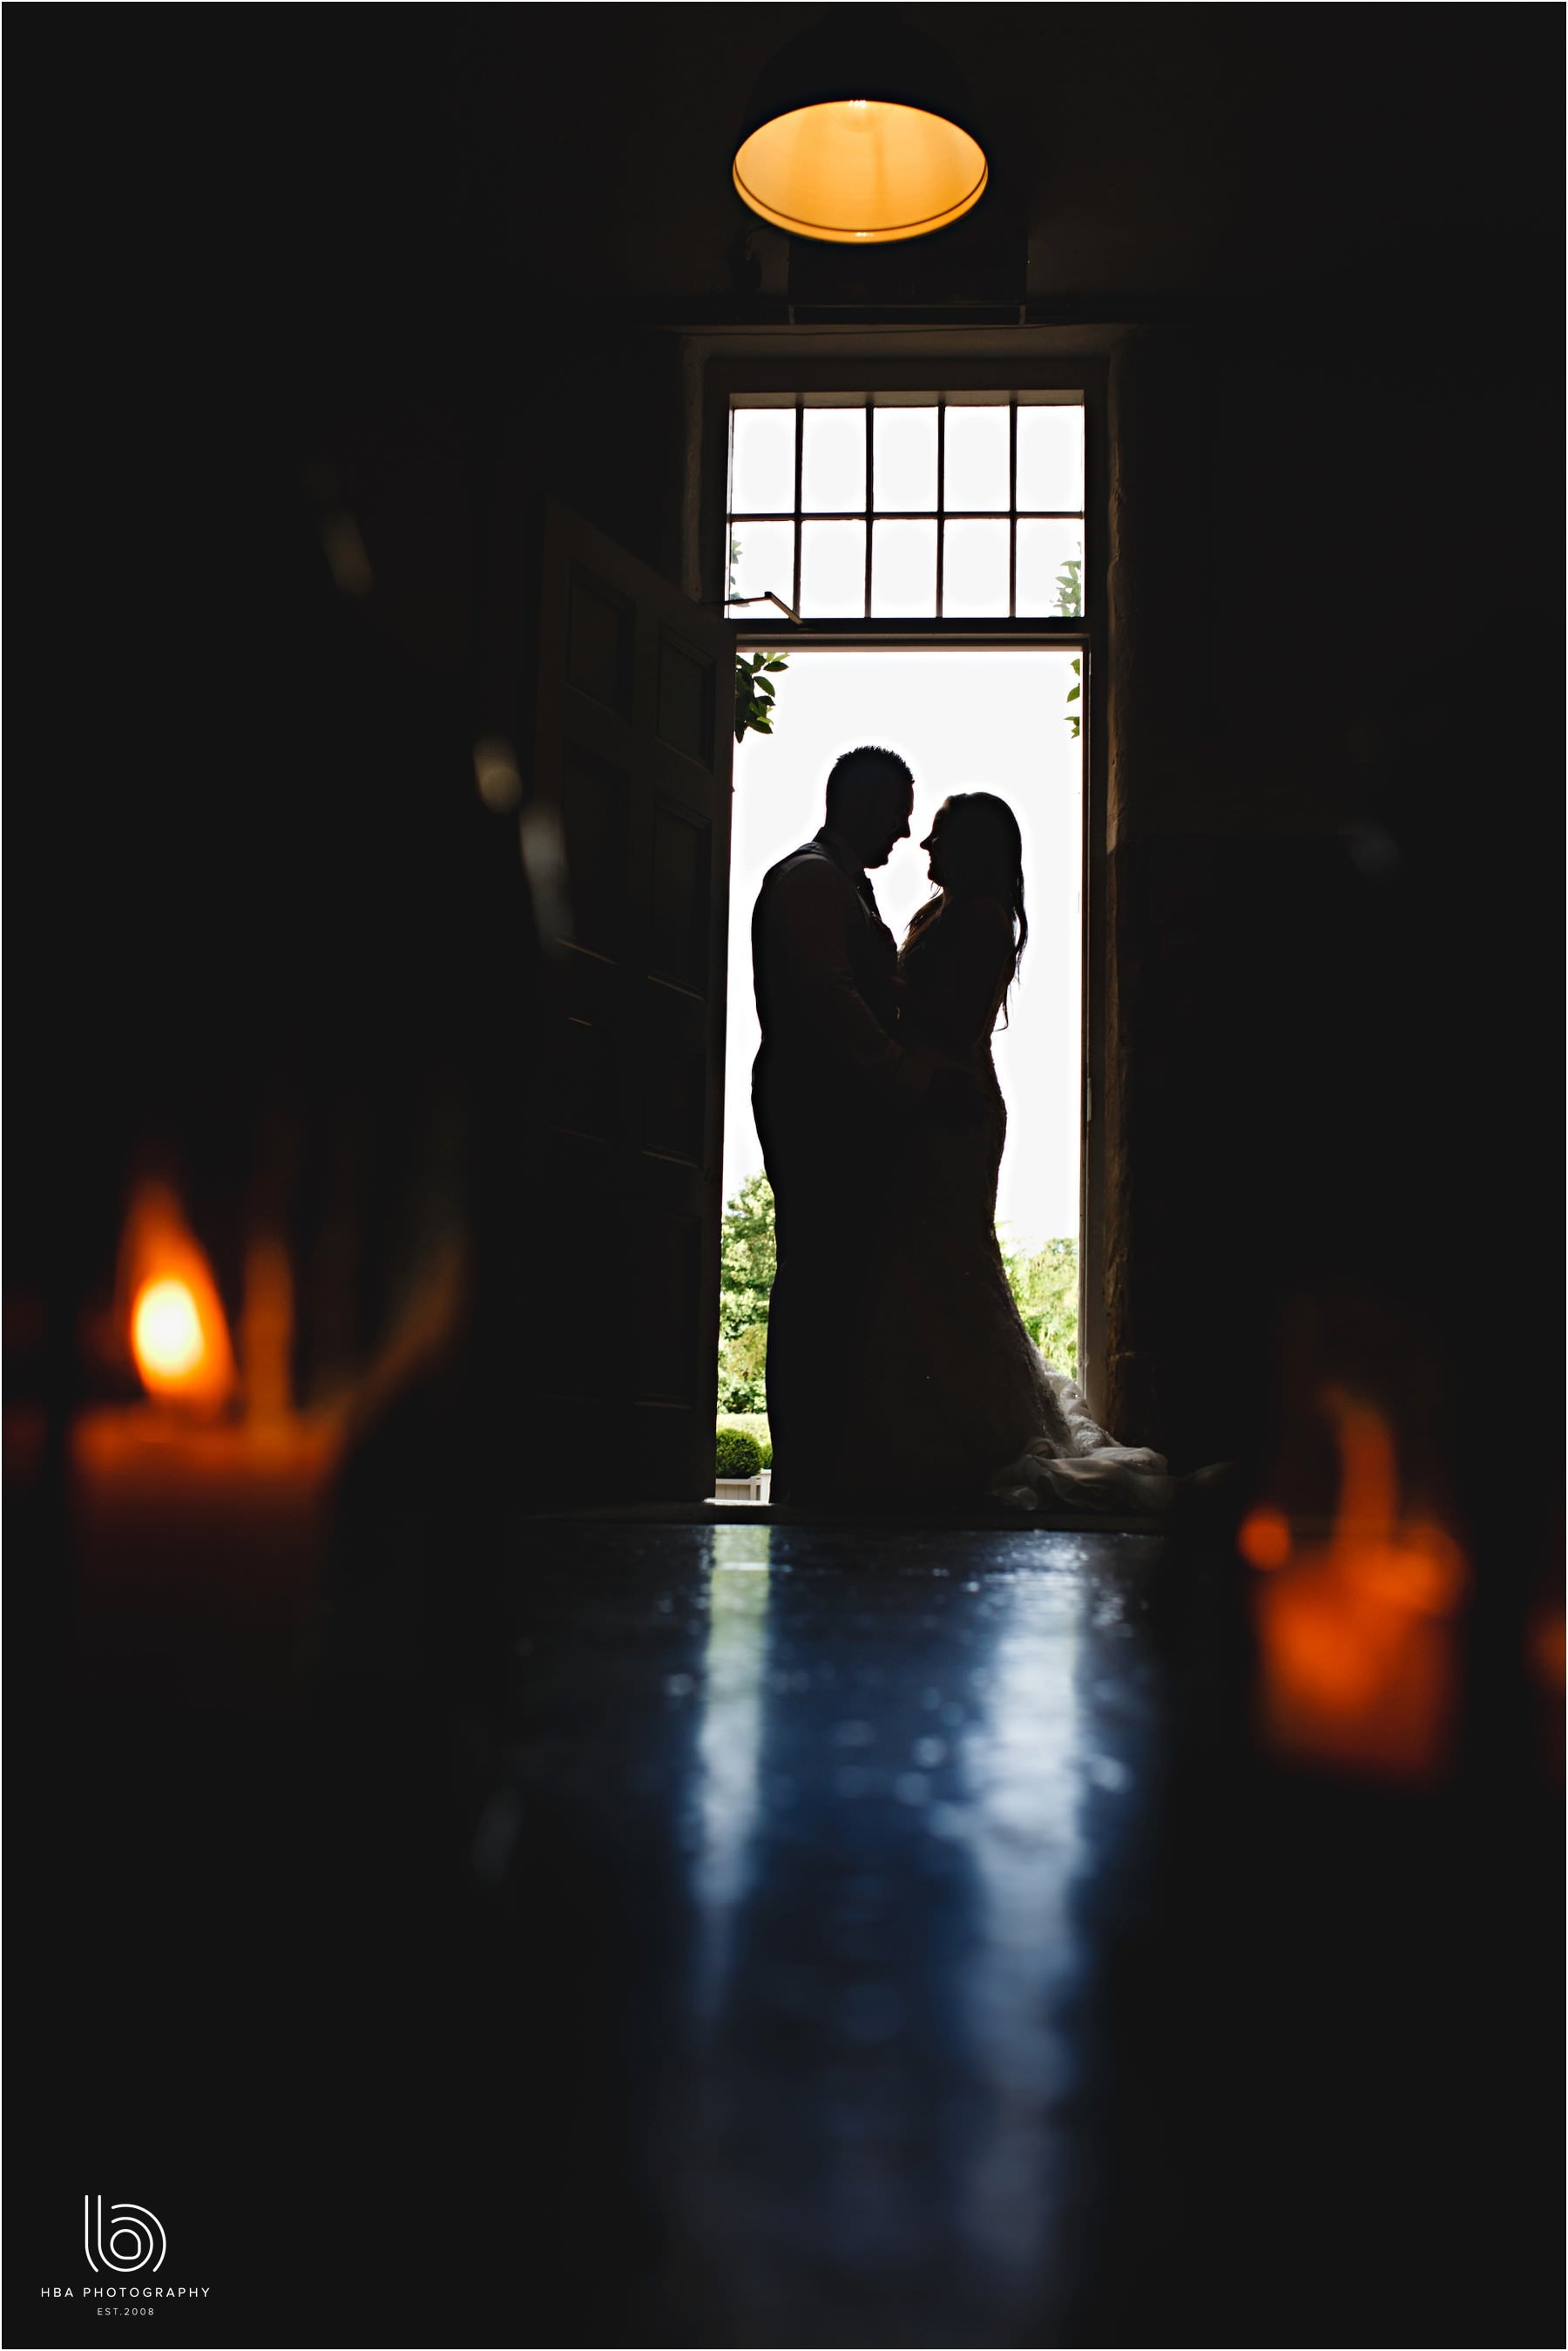 the bride & groom in silhouette by the front door